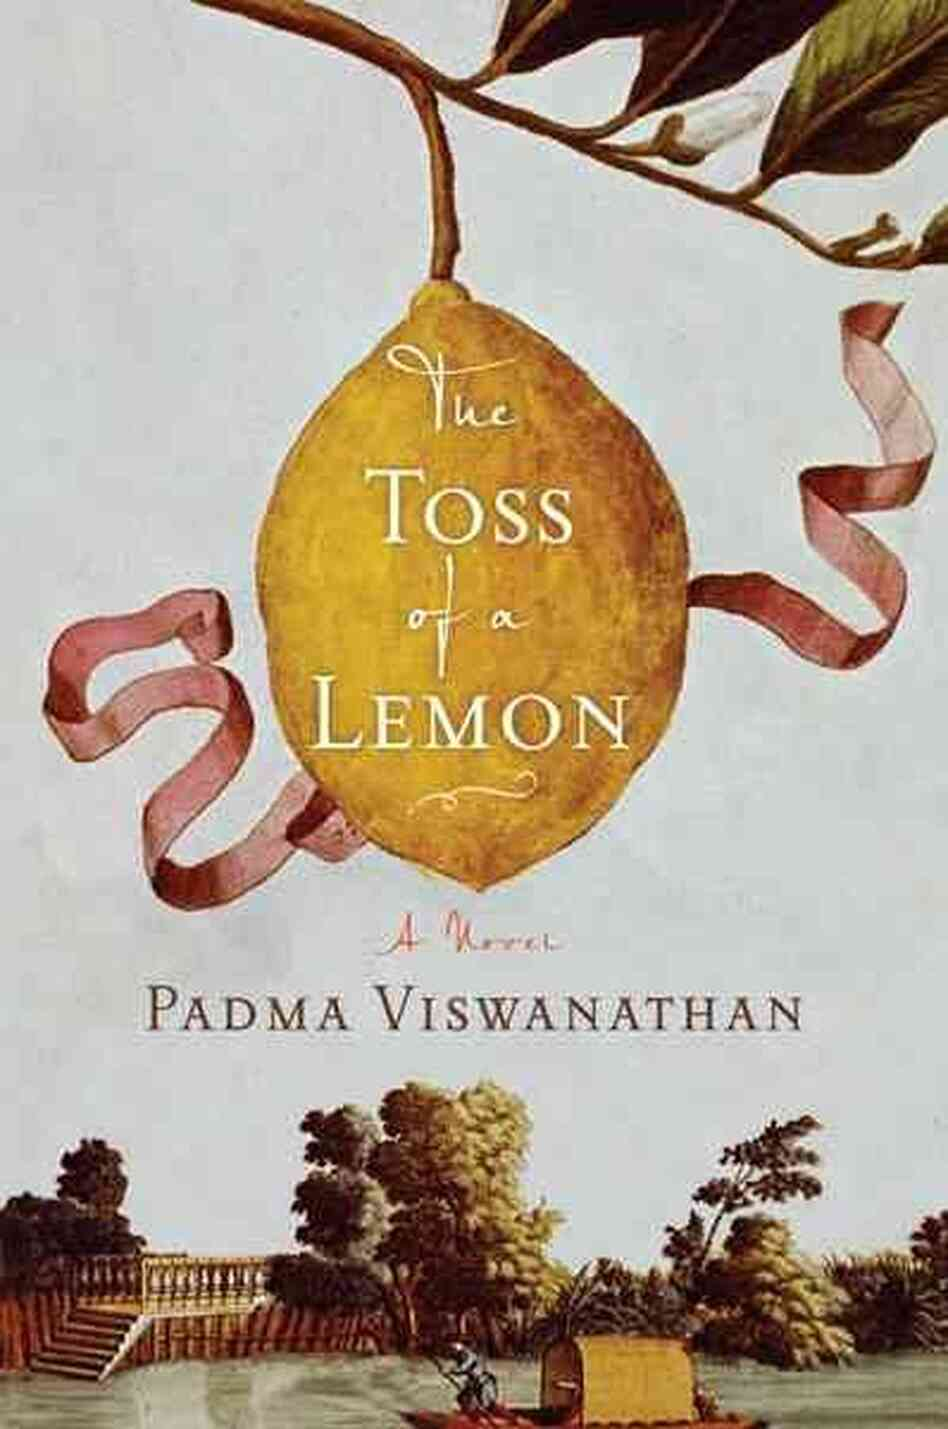 The Toss of a Lemon